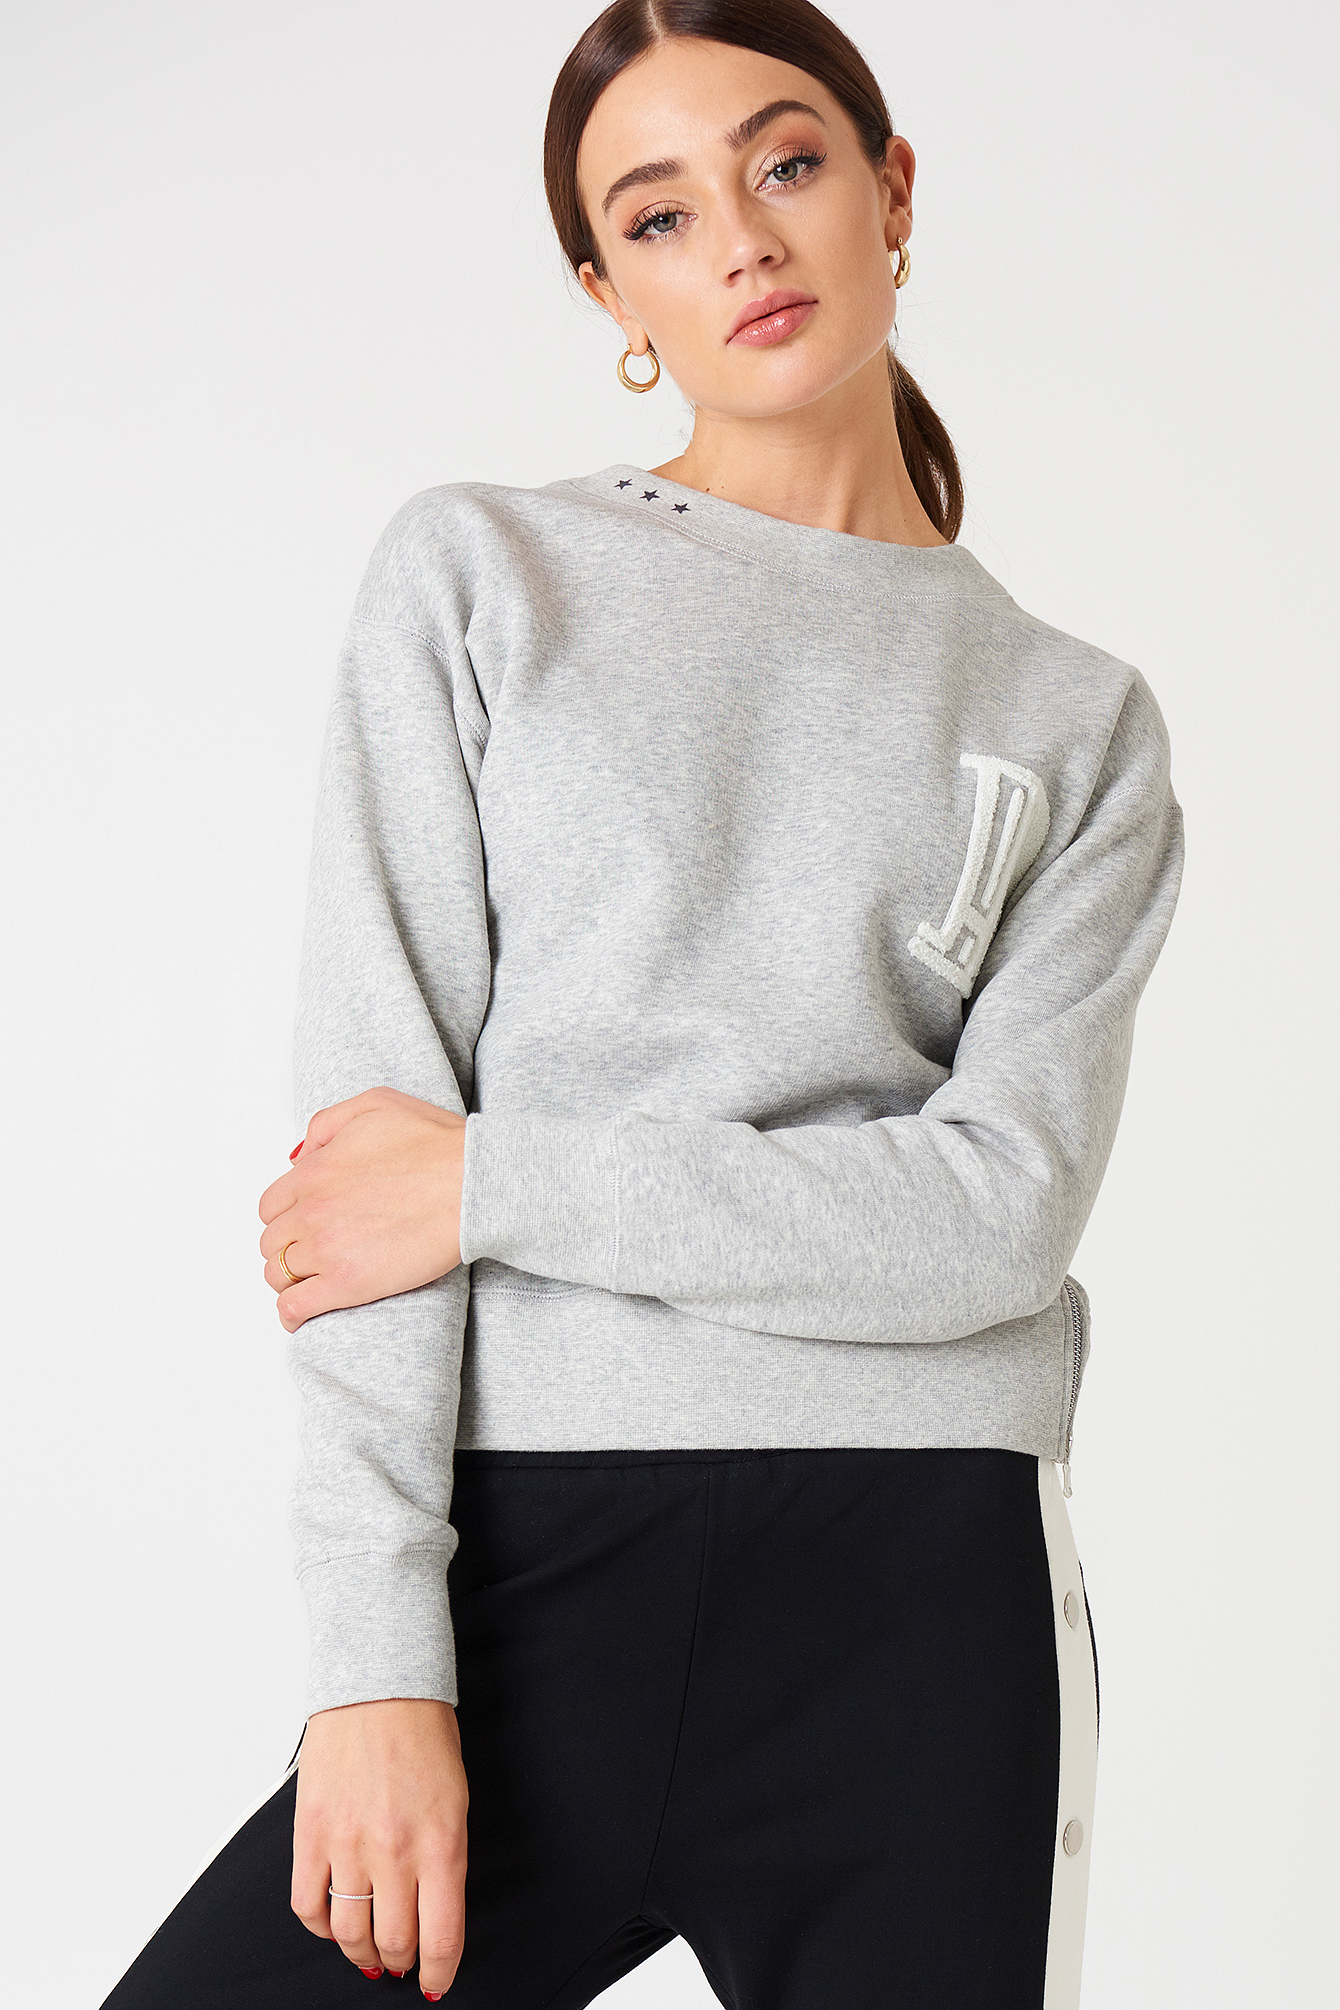 Hunkydory HD ZIP CREW SWEAT - GREY